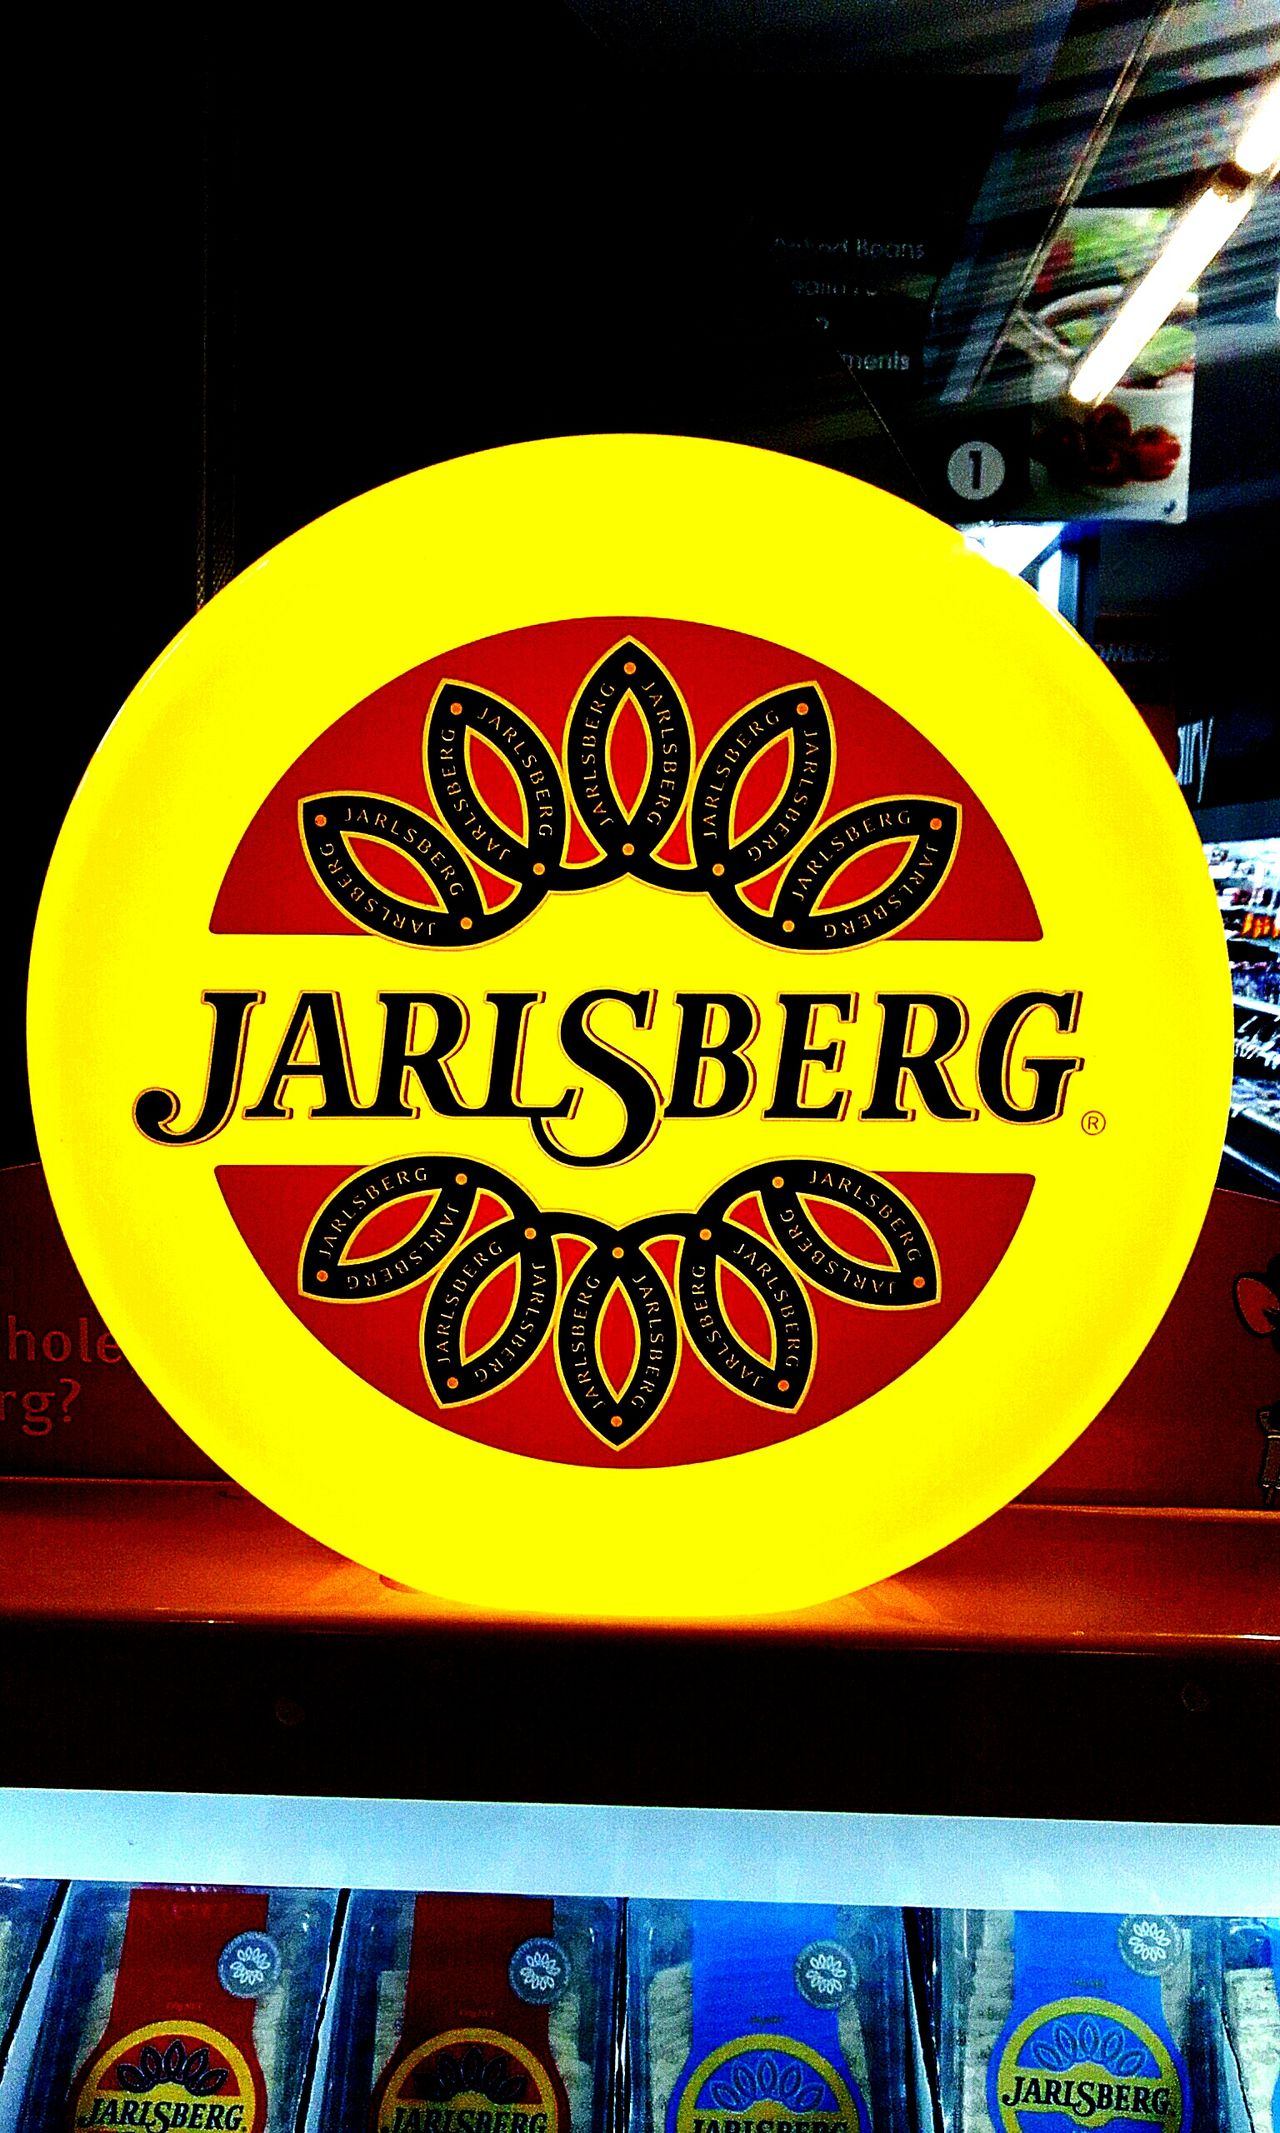 Jarlsberg Cheese SignSignEverywhereASign Signs Signs Everywhere Signs Signage Signgeeks Sign Signporn Signs_collection Signs Signstalkers Signs, Signs, & More Signs SIGN. Signs & More Signs Dairy Product Sign, Sign, Everywhere A Sign SignsSignsAndMoreSigns Advertising Signs SIGNS. Illuminated Signs Jarlsbergcheese Jarlsberg Cheese Cheeseporn Round Dairy Products